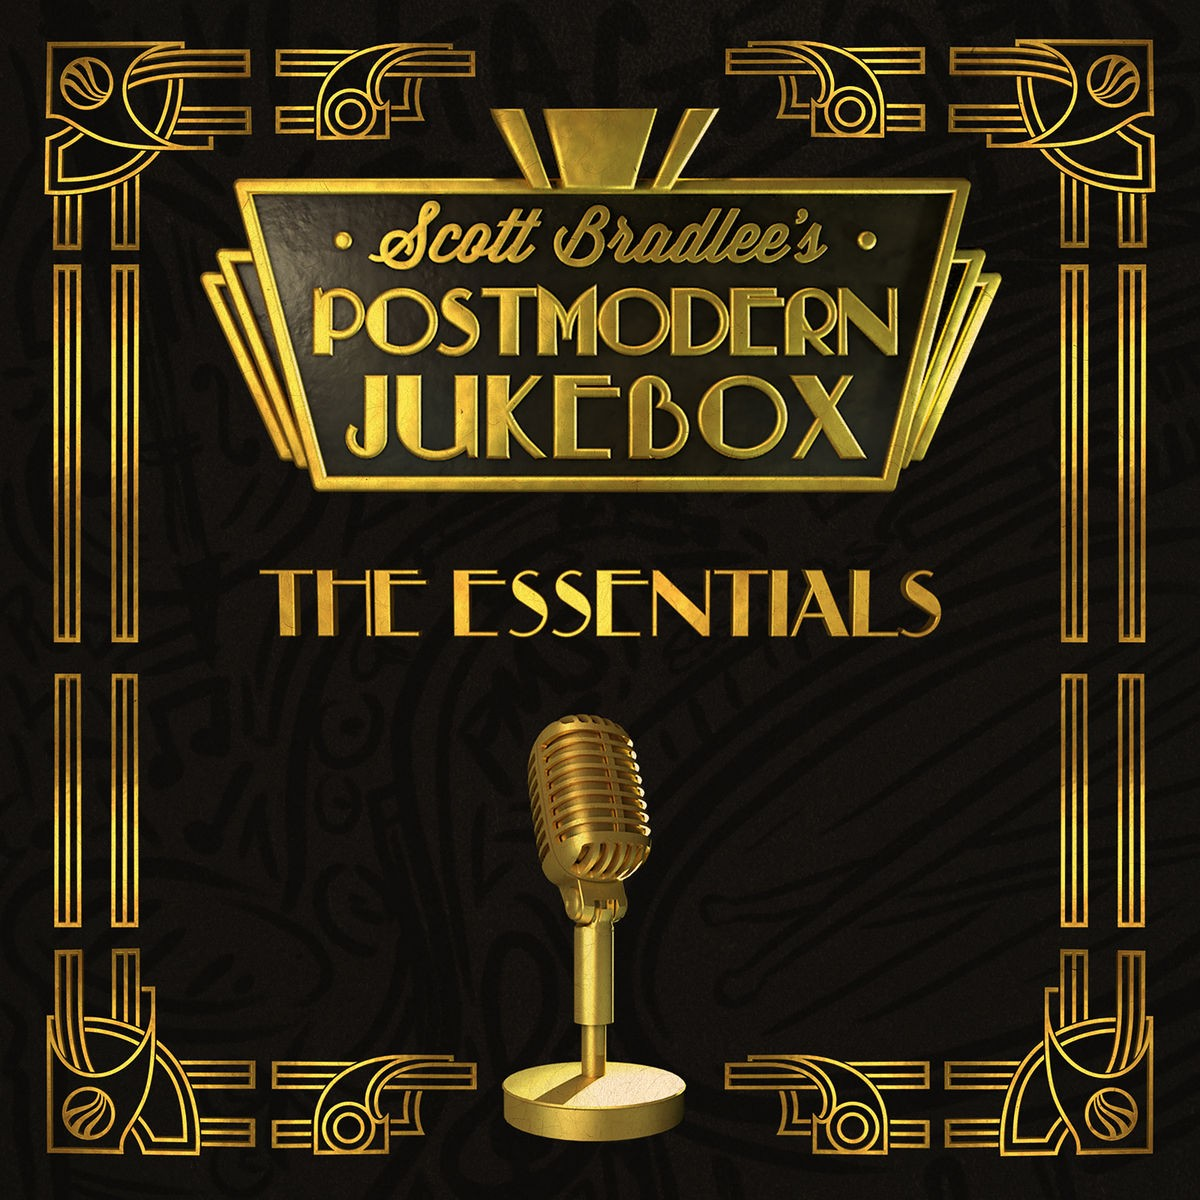 Scott Bradlee's Postmodern Jukebox - Essentials VINYL - 08880 7201240